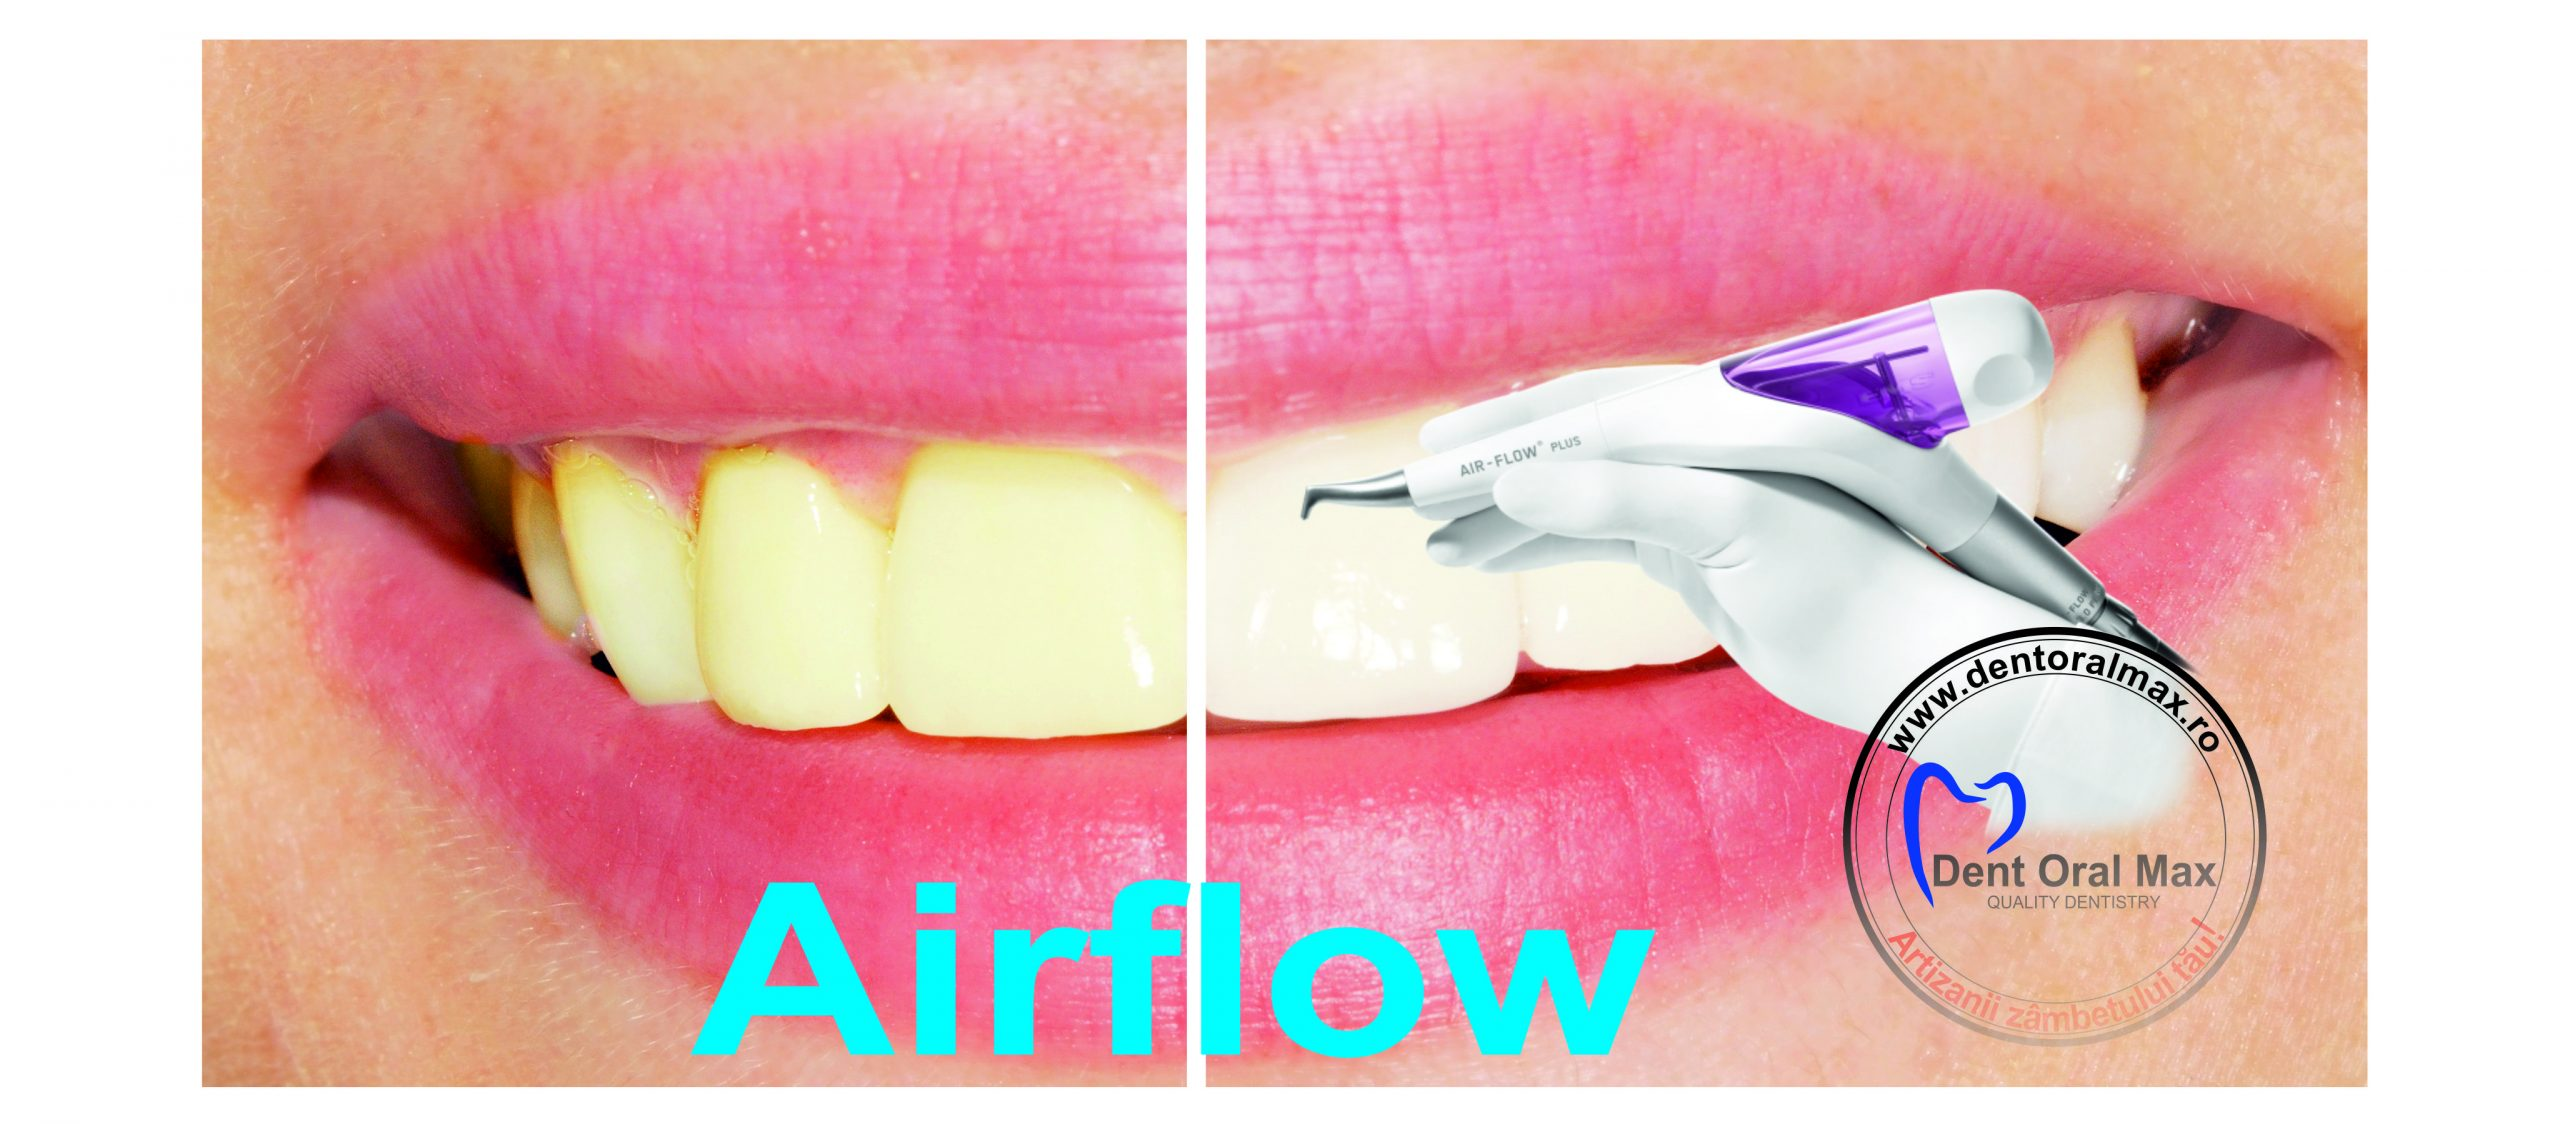 AirFlow 10 before after